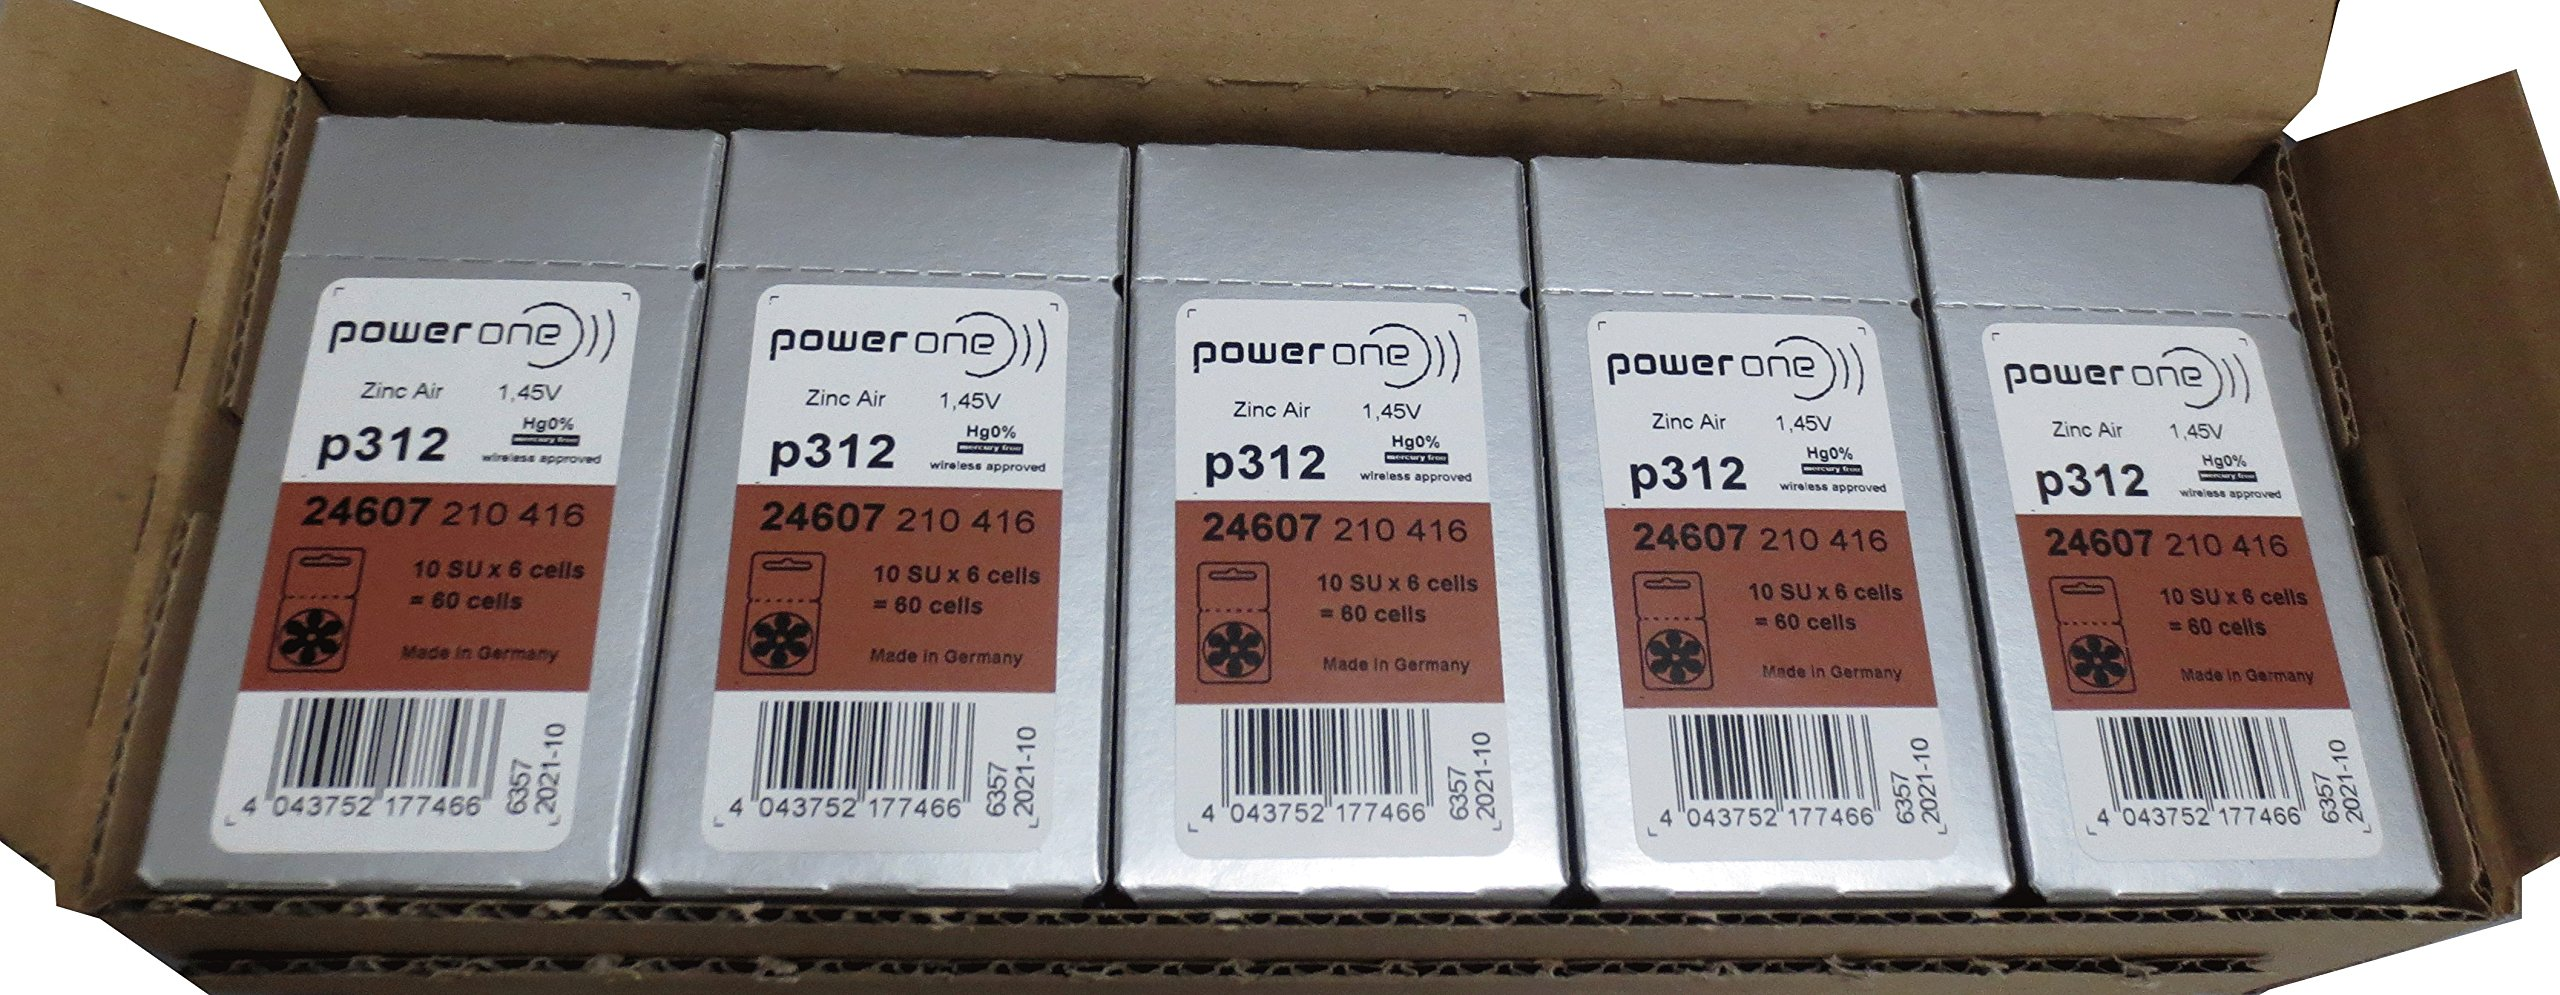 PowerOne Hearing Aid Batteries Size 312 - 50 Packs of 6 Cells